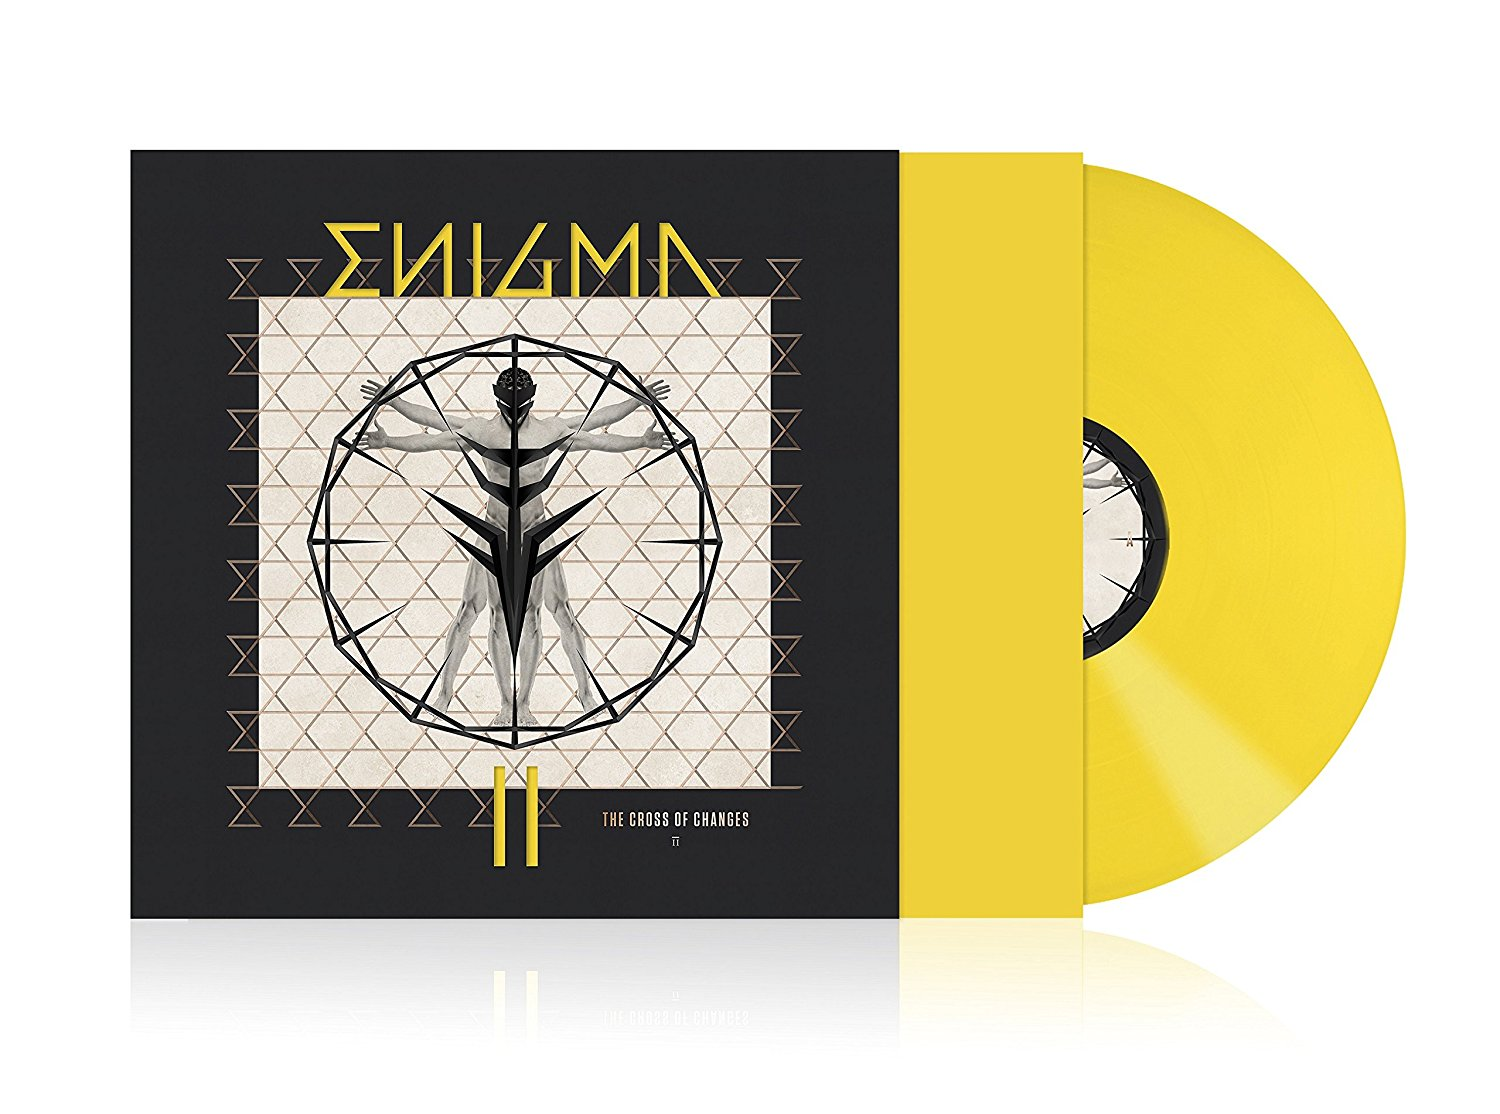 Enigma Enigma. The Cross Of Changes (II) (LP) the enigma that was thomas william cowan